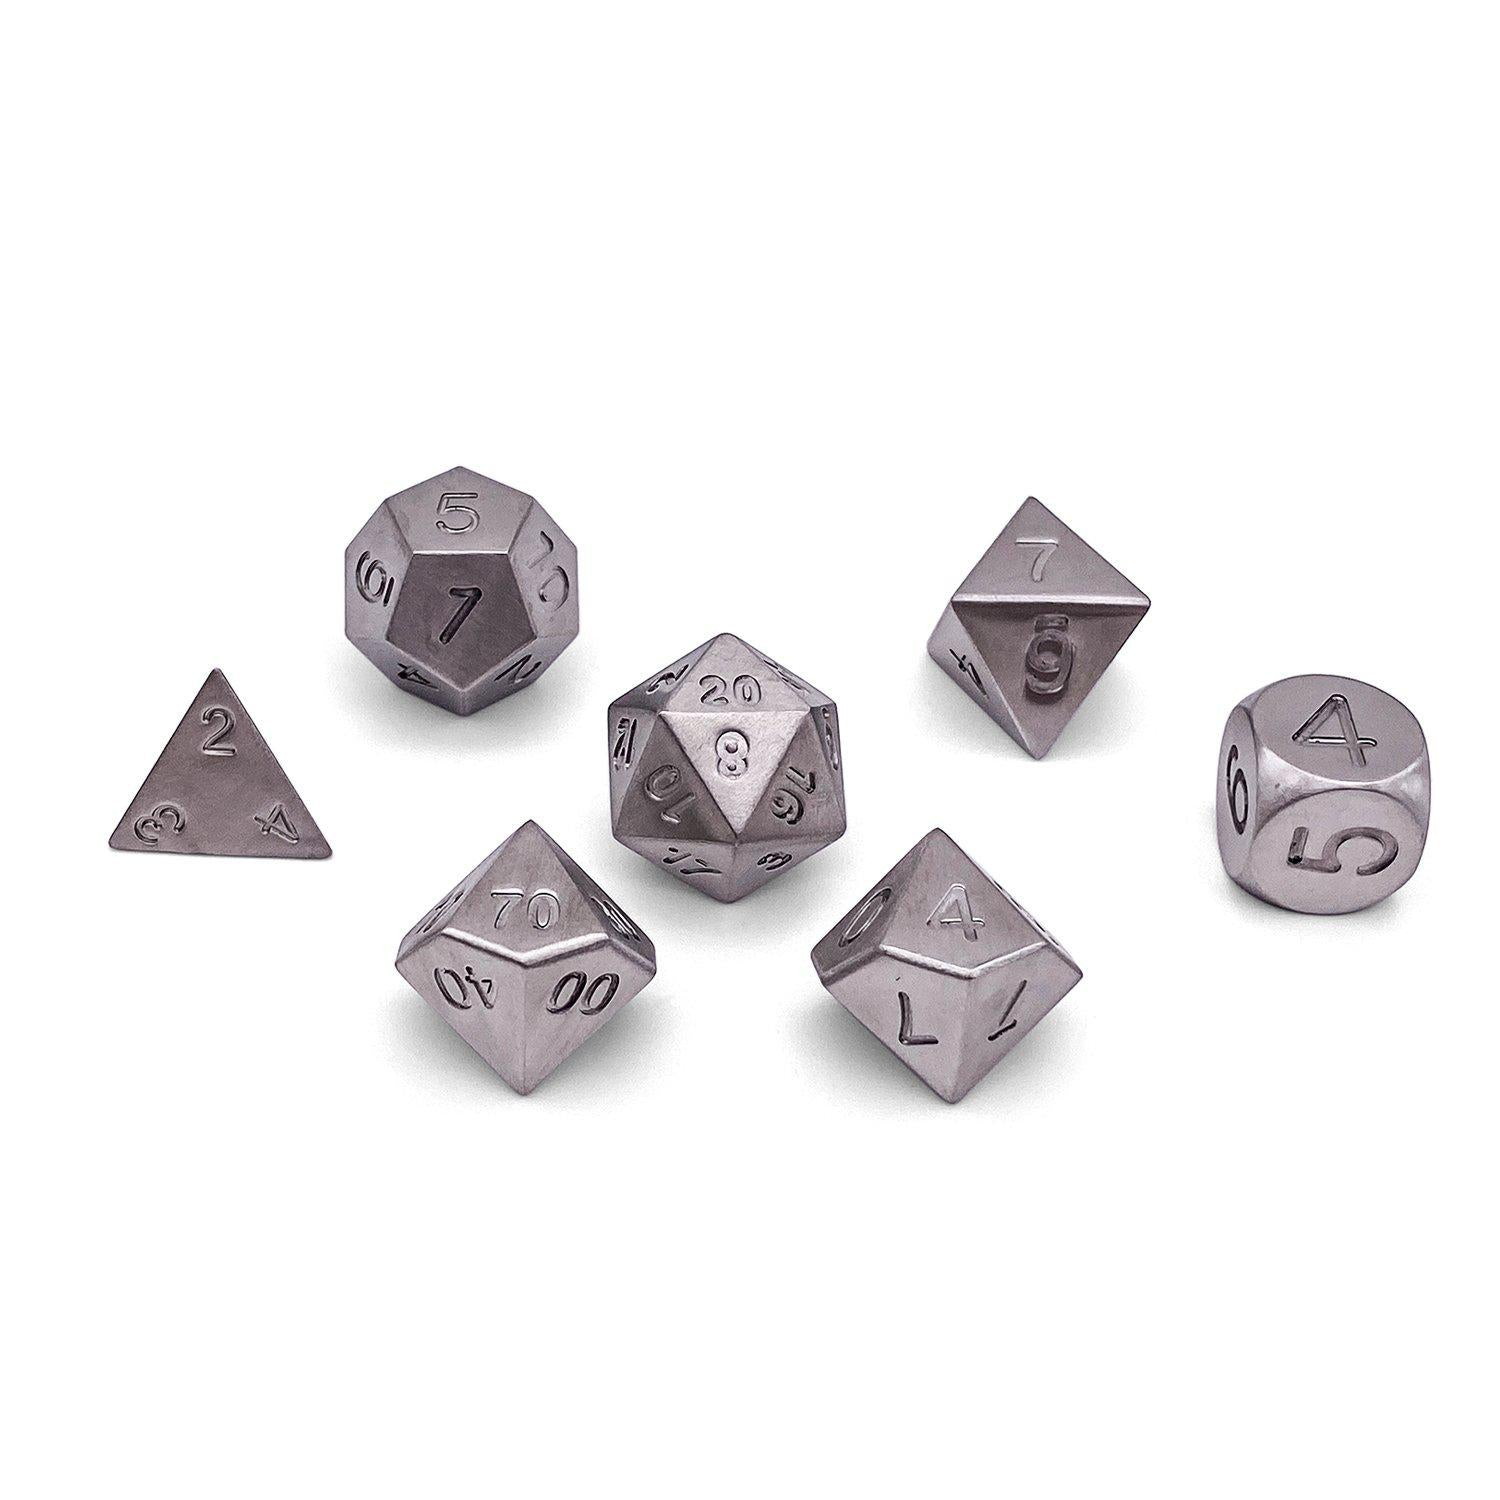 Set Of 7 Stainless Steel Rpg Dice By Norse Foundry Polyhedral Dice Set Or perhaps individual dice besides d20s in metals? set of 7 stainless steel rpg dice by norse foundry polyhedral dice set